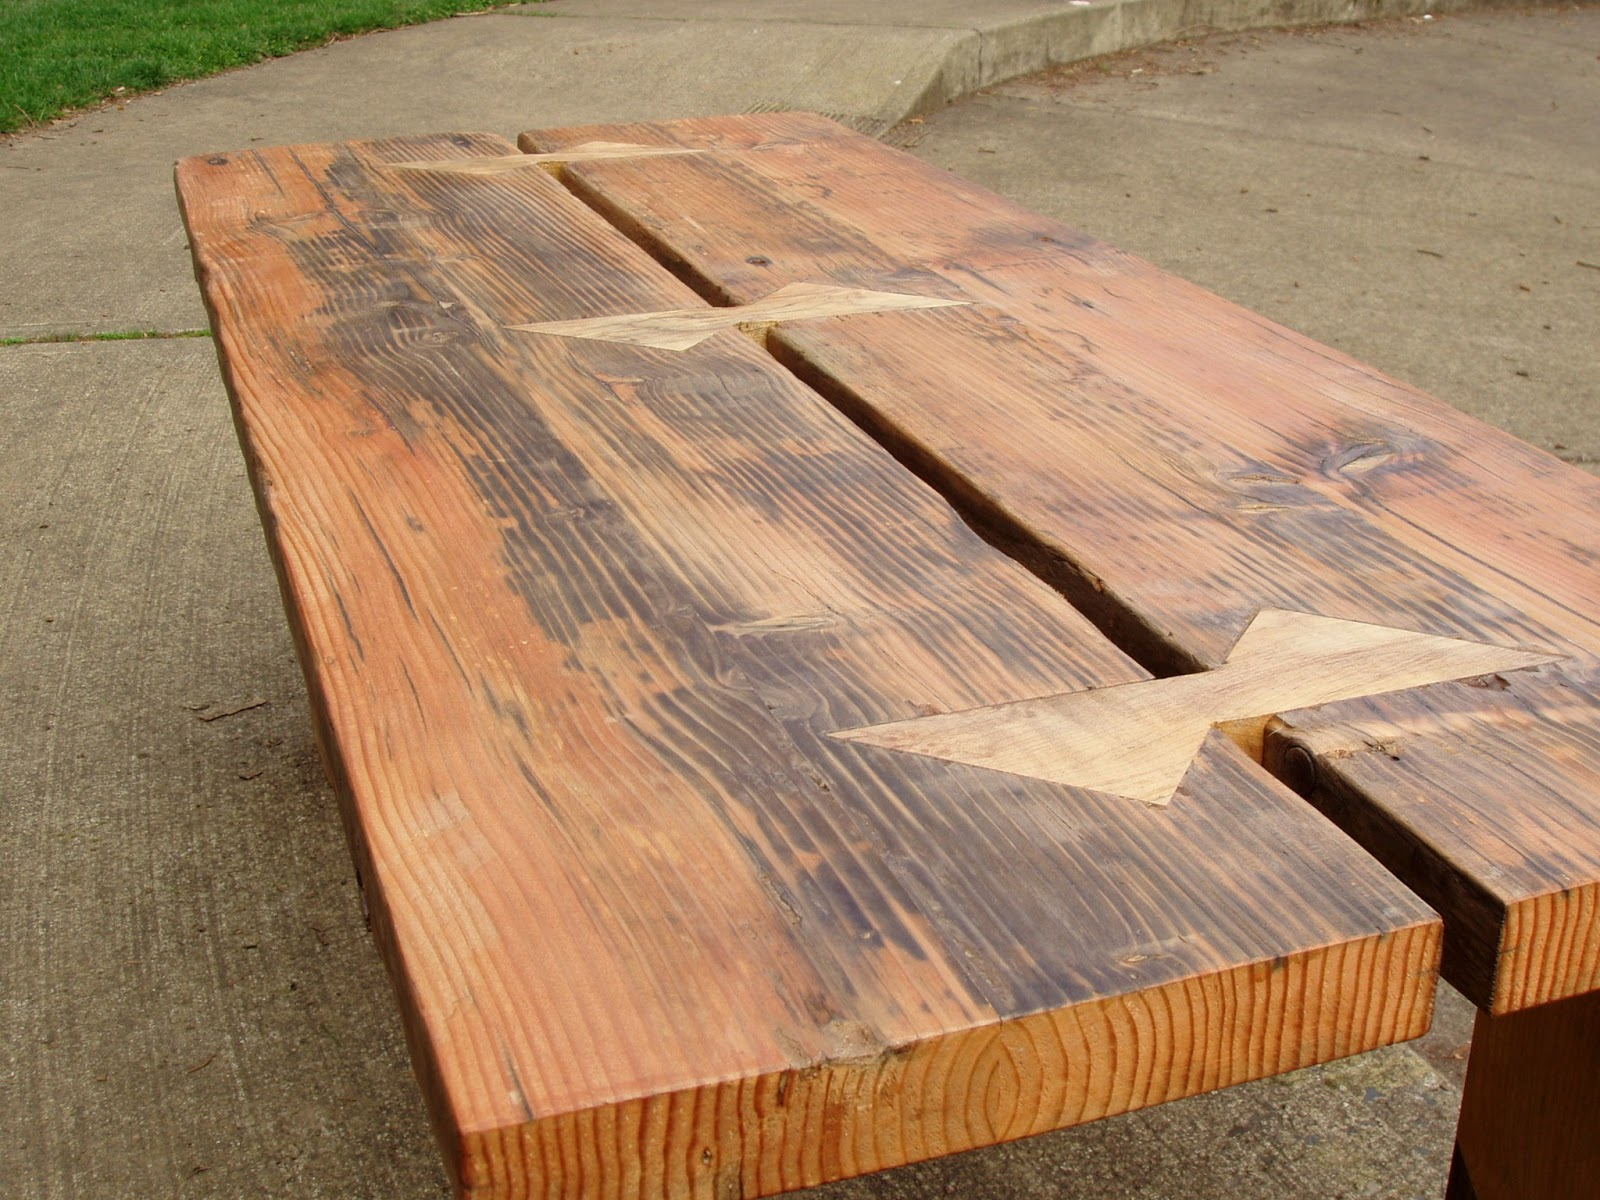 Reclaimed wood furniture portland oregon Reclaimed wood flooring portland